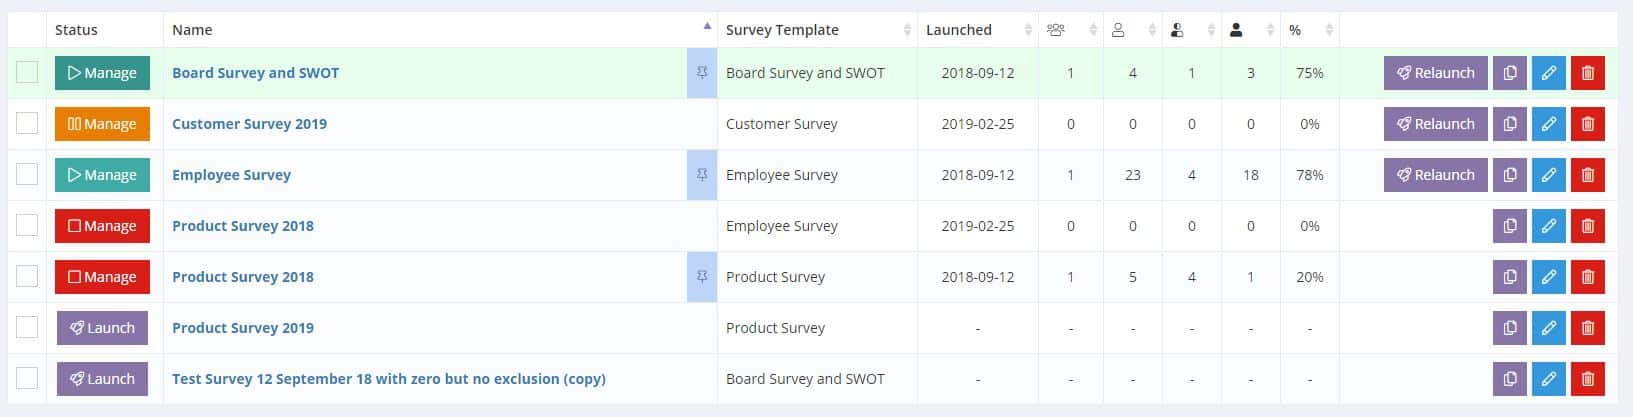 Survey Projects with Status